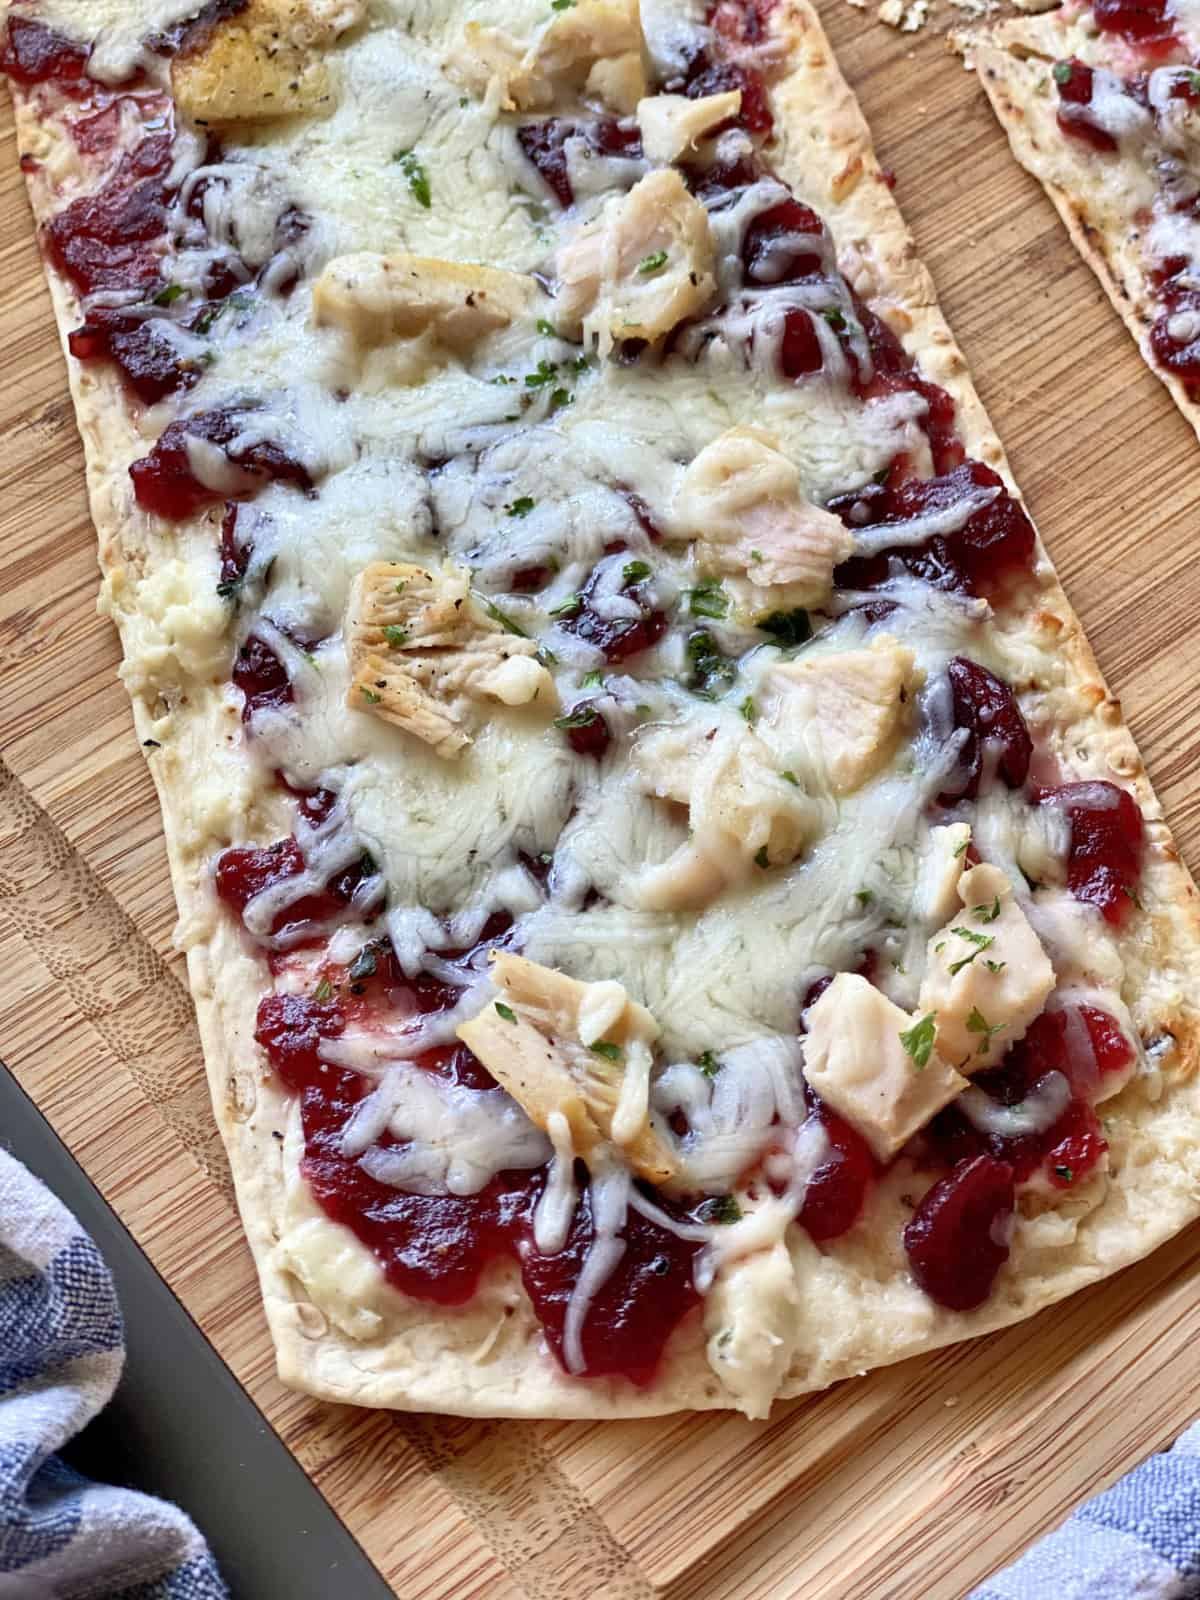 Top view of a single flatbread with turkey, mozzarella and cranberry sauce.